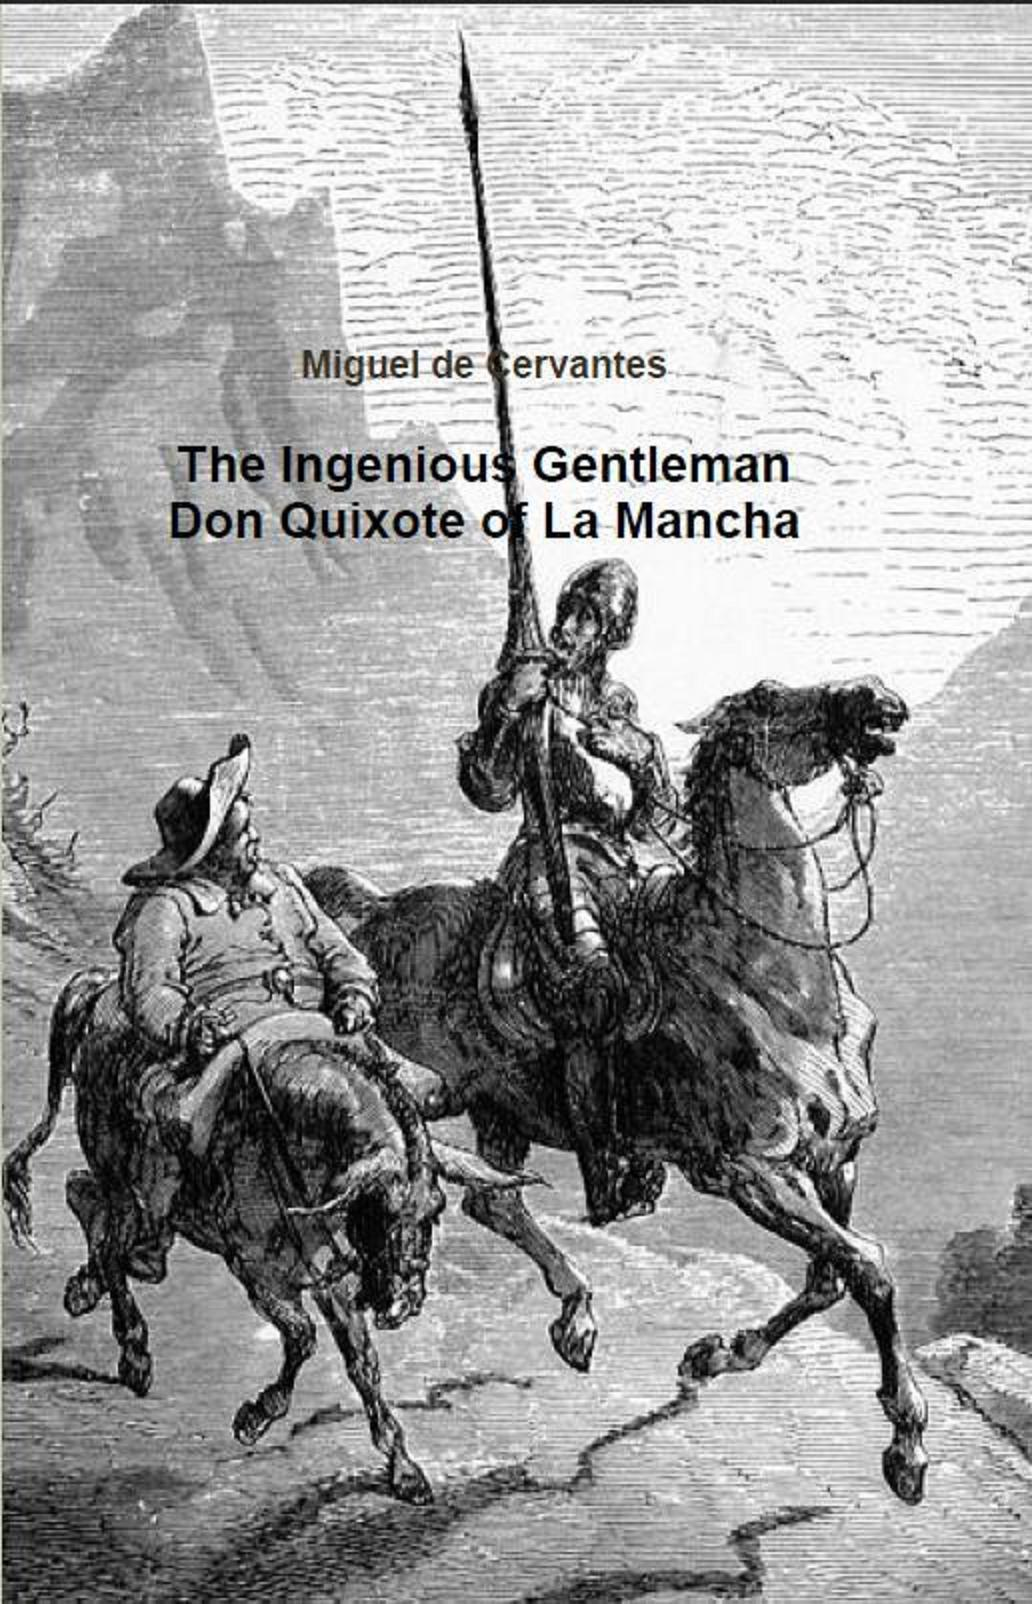 The Ingenious Gentleman Don Quixote of La Mancha By: Miguel de Cervantes